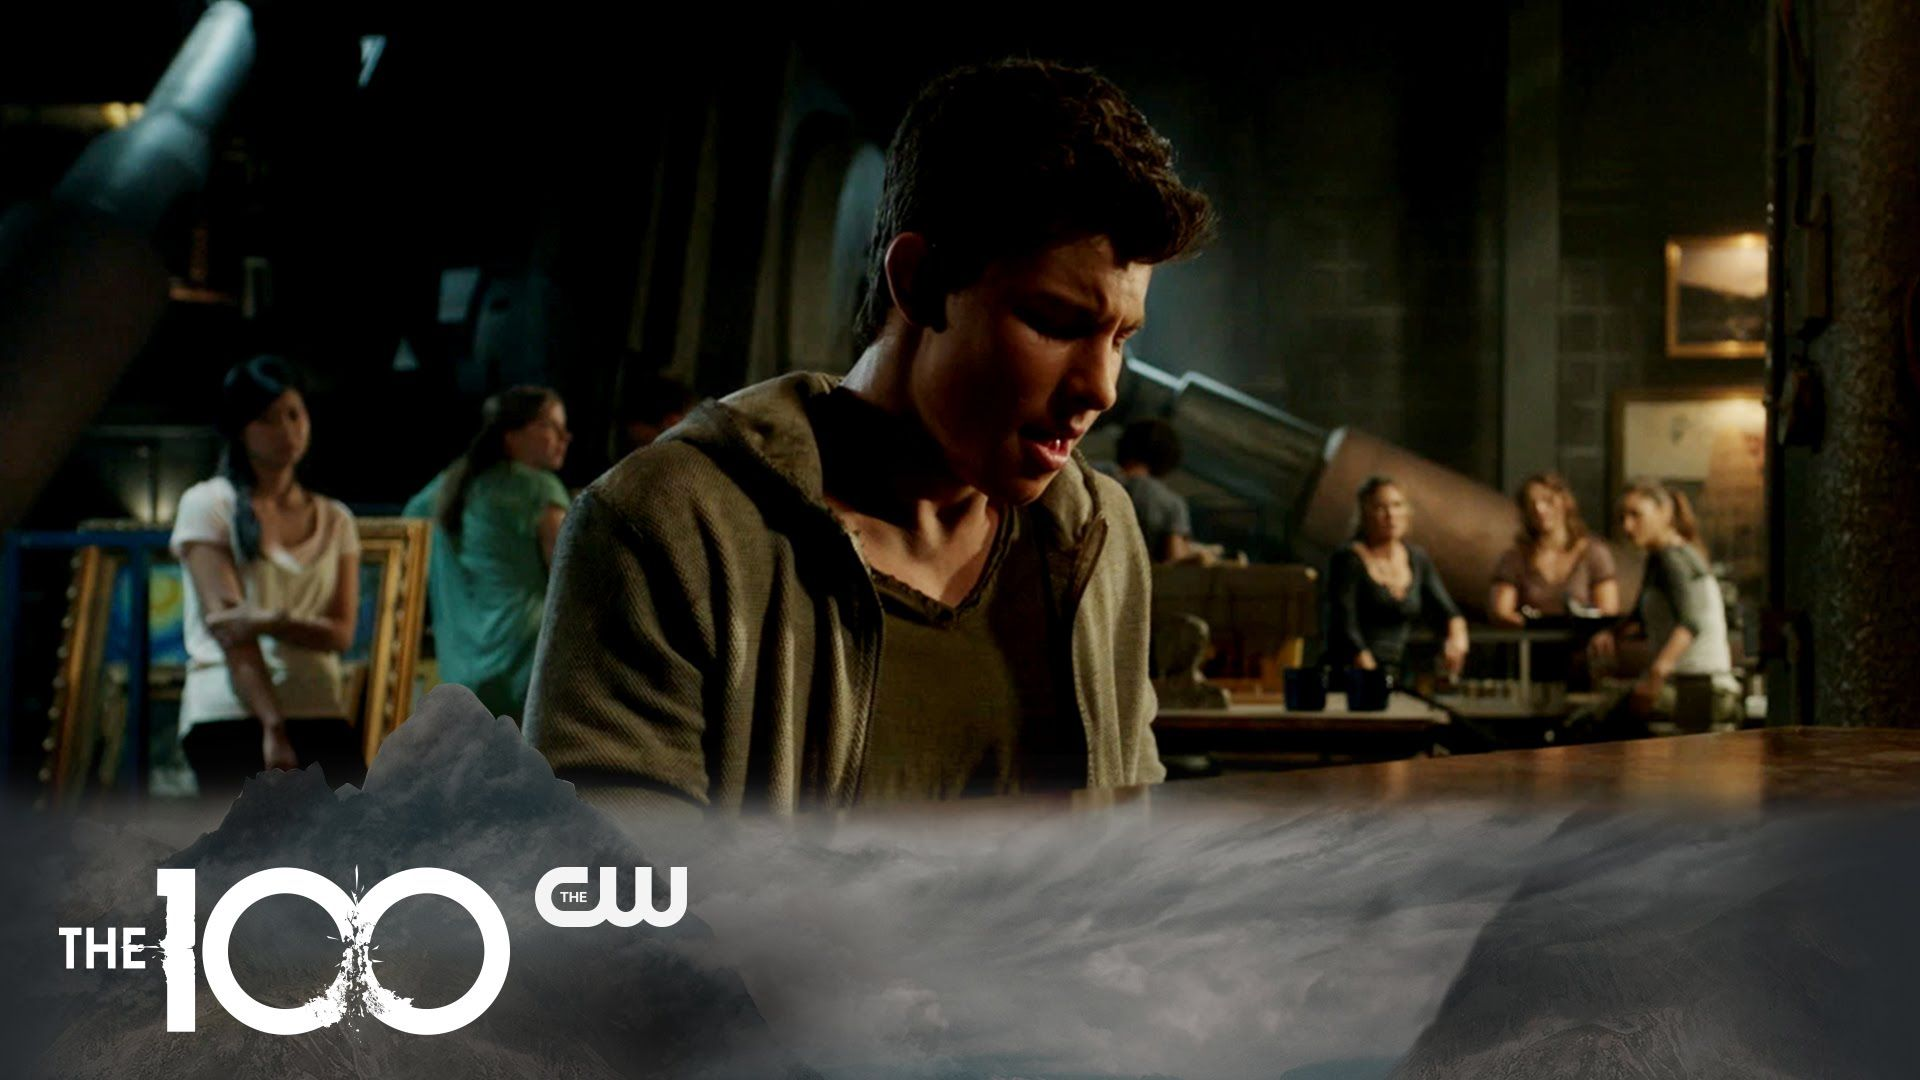 The 100 Shawn Mendes Add It Up Music Video The Cw Oh